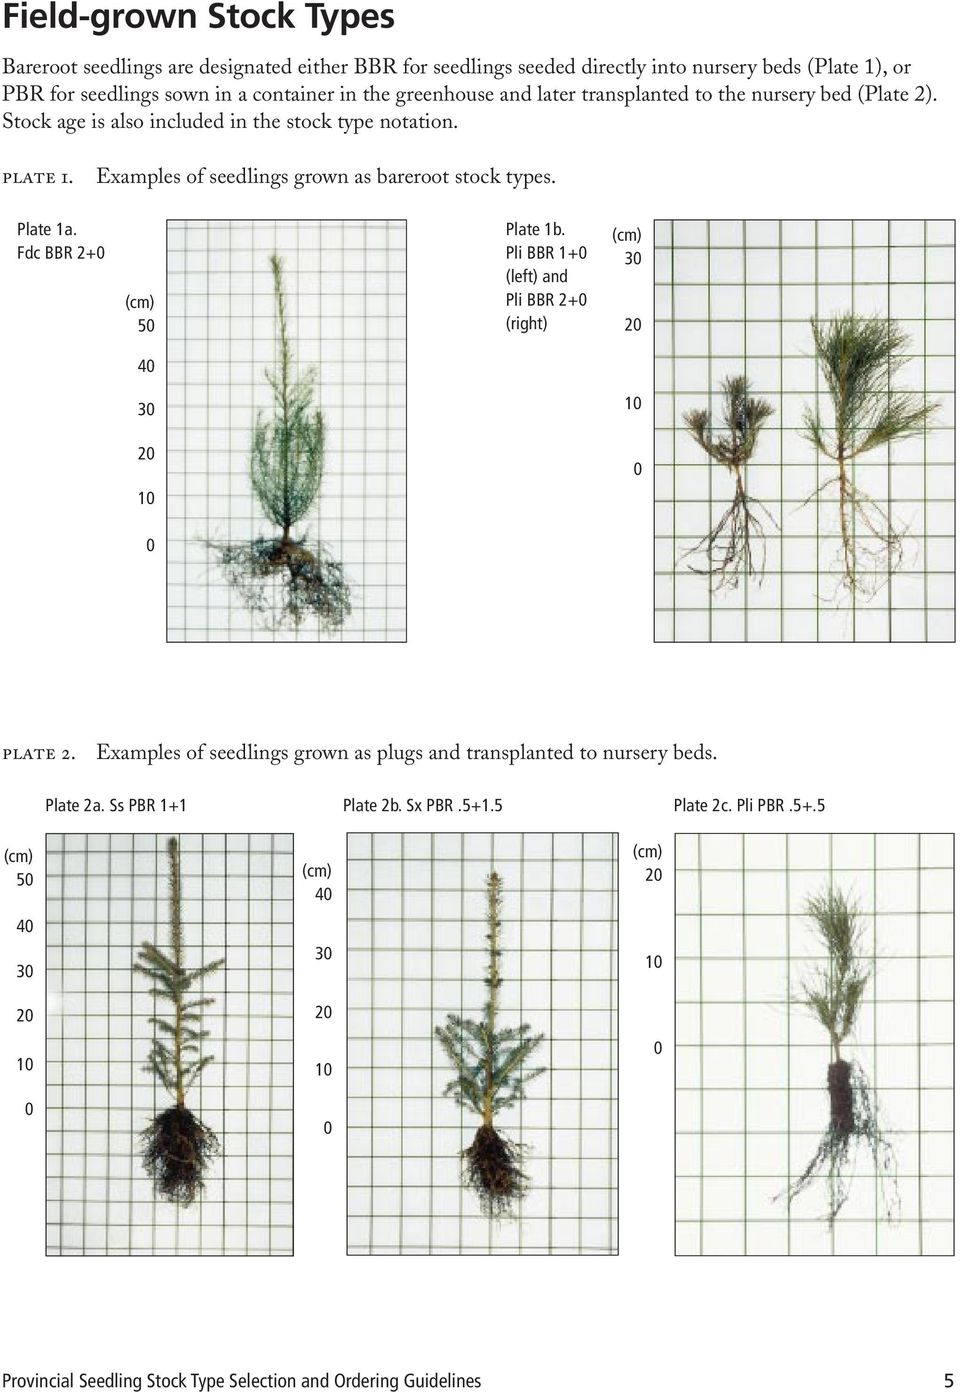 Examples of seedlings grown as bareroot stock types. Plate 1a. Fdc BBR 2+0 (cm) 50 Plate 1b.